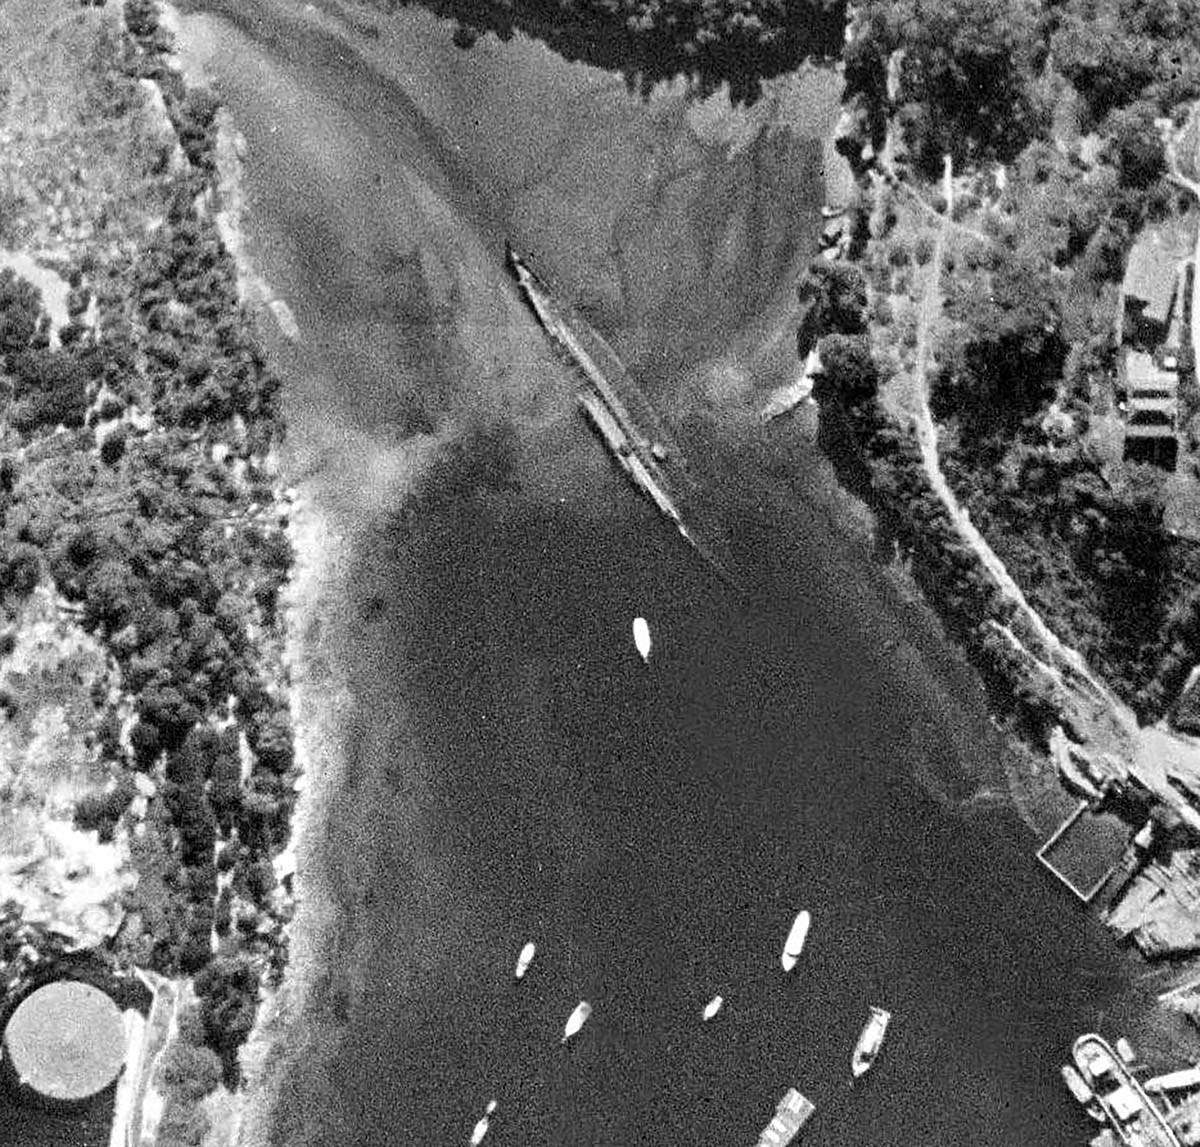 An aerial image of the mudflat at the top of Berrys Bay in 1943, with the hull of a large ship clearly visible. NSW Department of Finance and Services